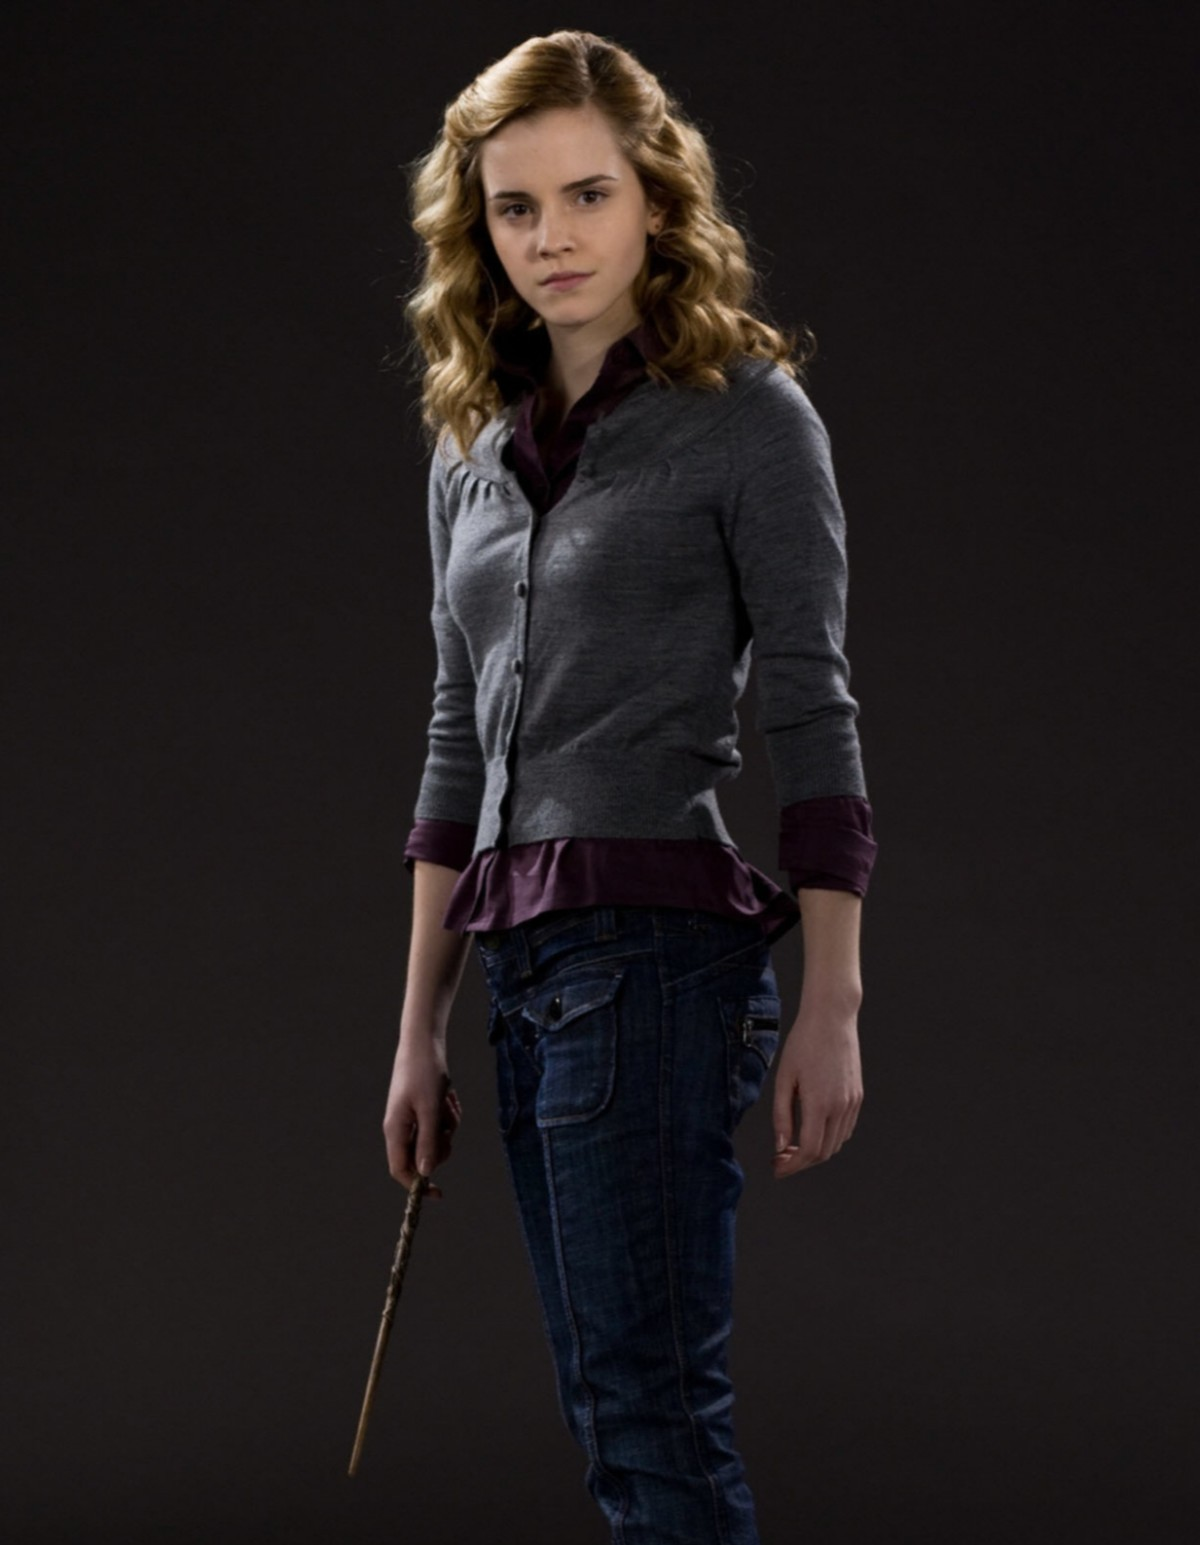 Hermione dating